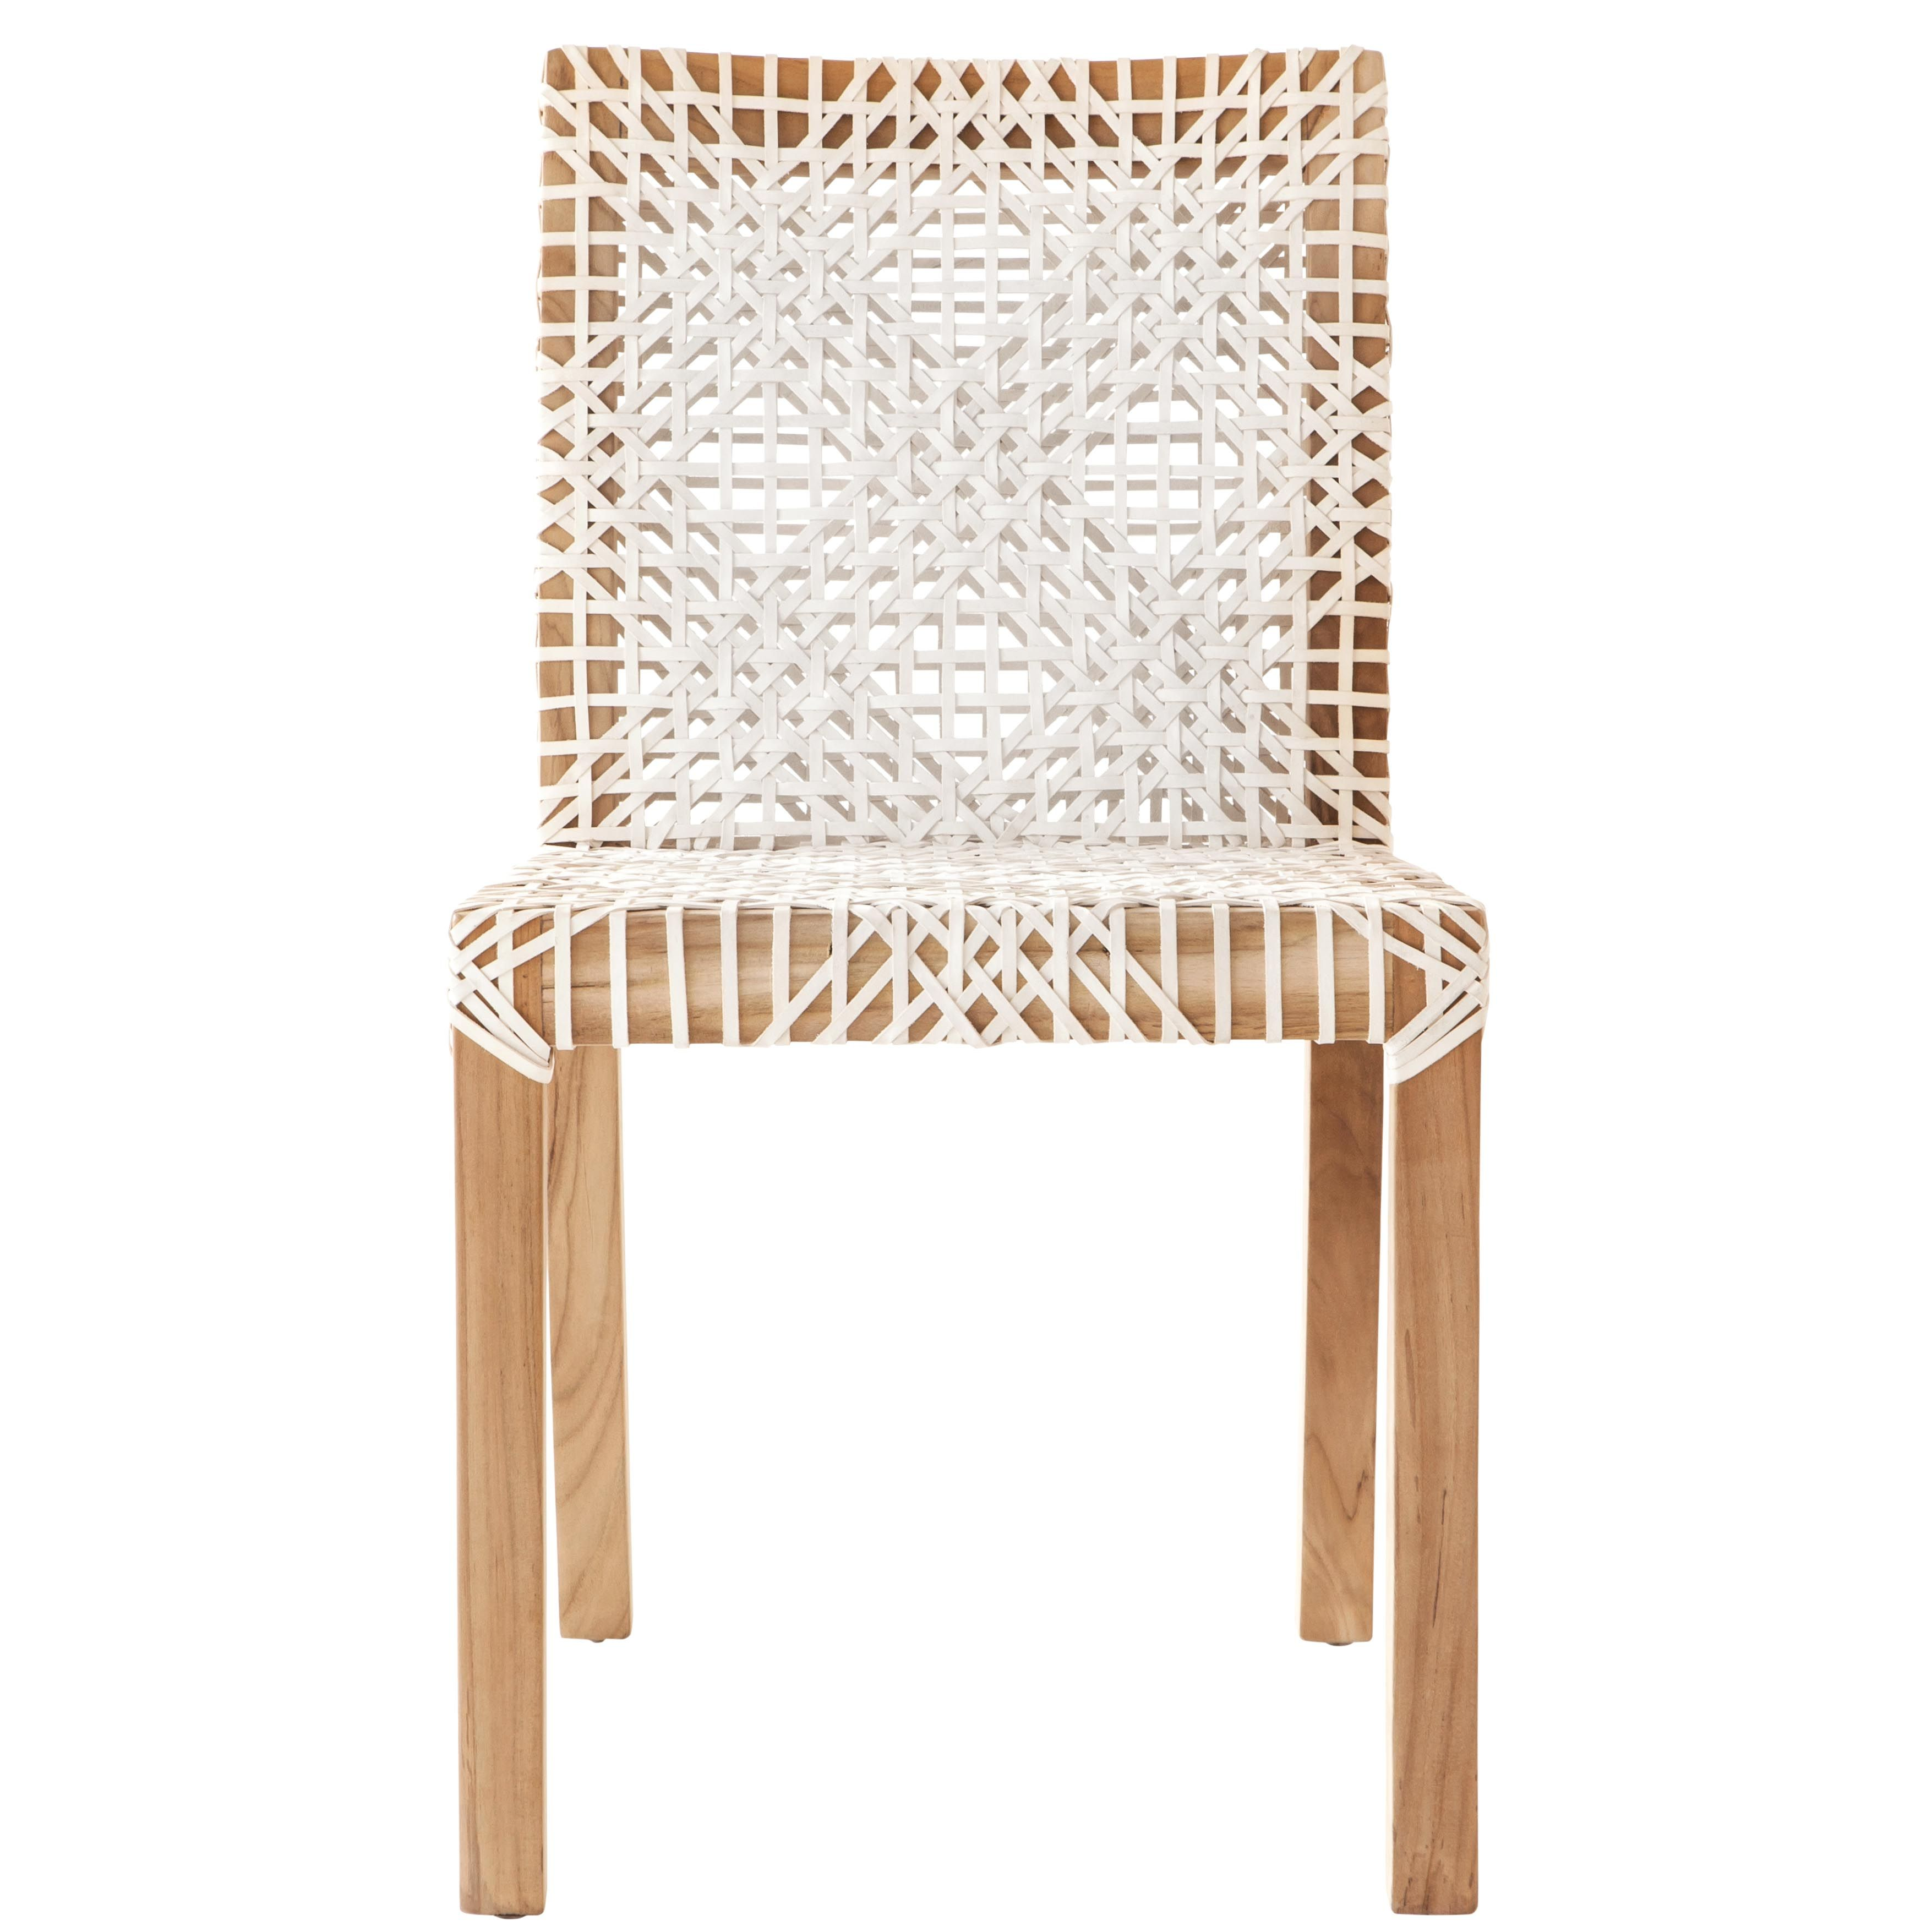 The Best Woven Dining Chairs Idea For Your Wicker Outdoor Dining Sets Brisbane Appealing Woven Dining Dining Chairs For Sale Dining Chairs Woven Dining Chairs